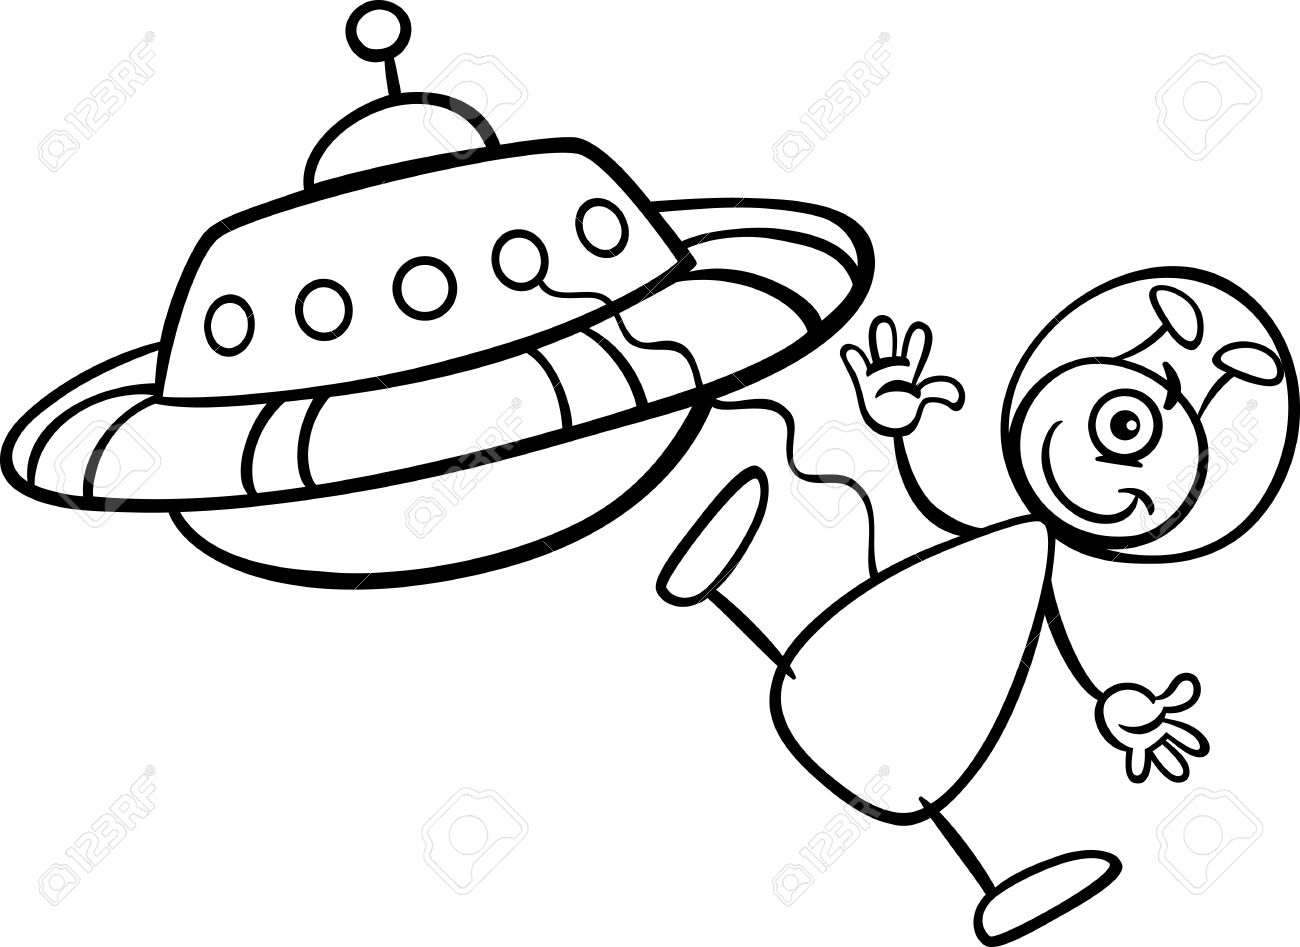 1300x947 Black And White Cartoon Illustration Of Funny Alien Or Martian